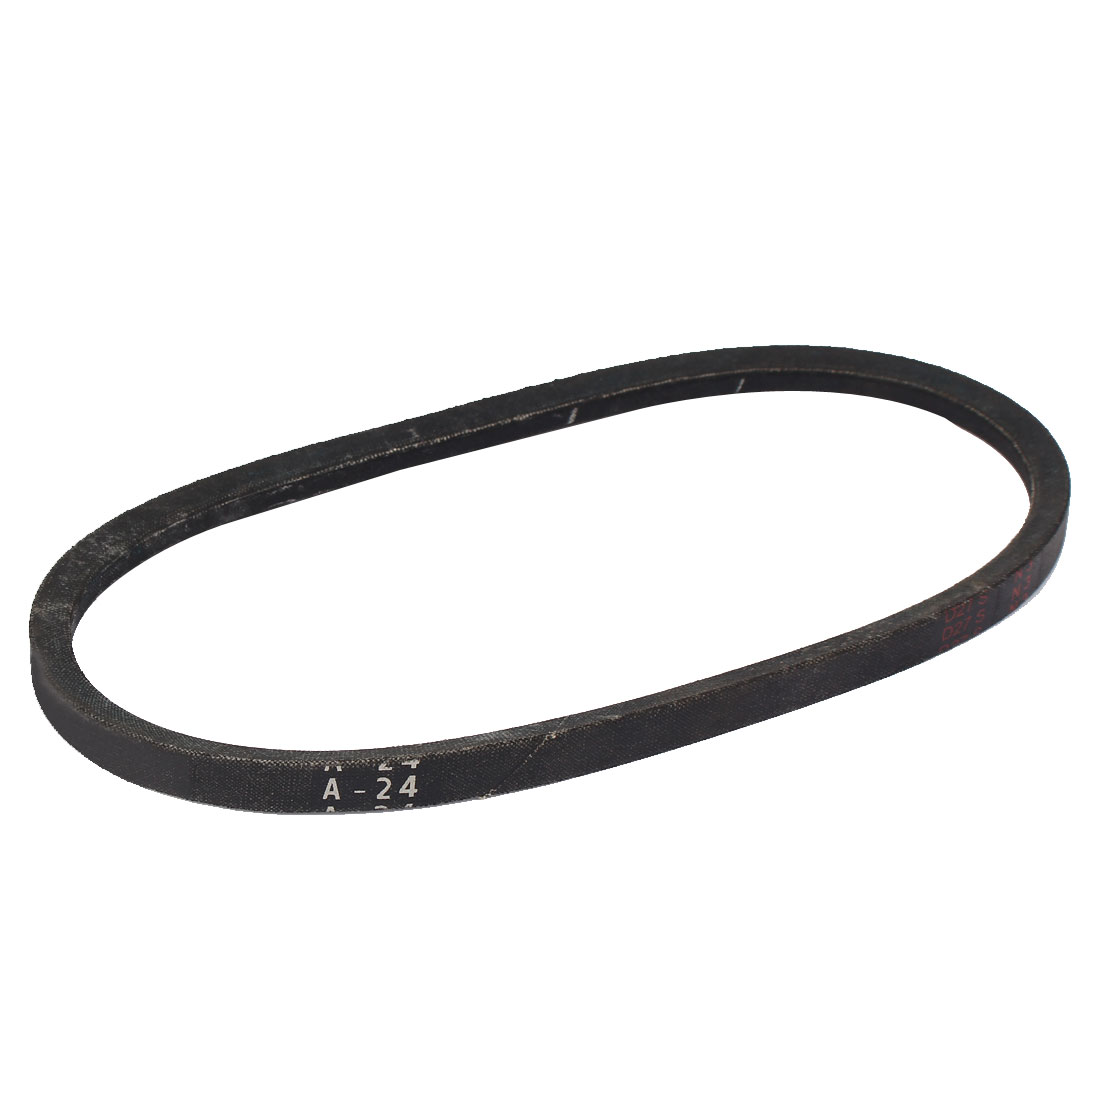 "A24 Yard Machine Lawn Mower Tractor Drive Belt V-Belt 24"" x 1/2"" Black"